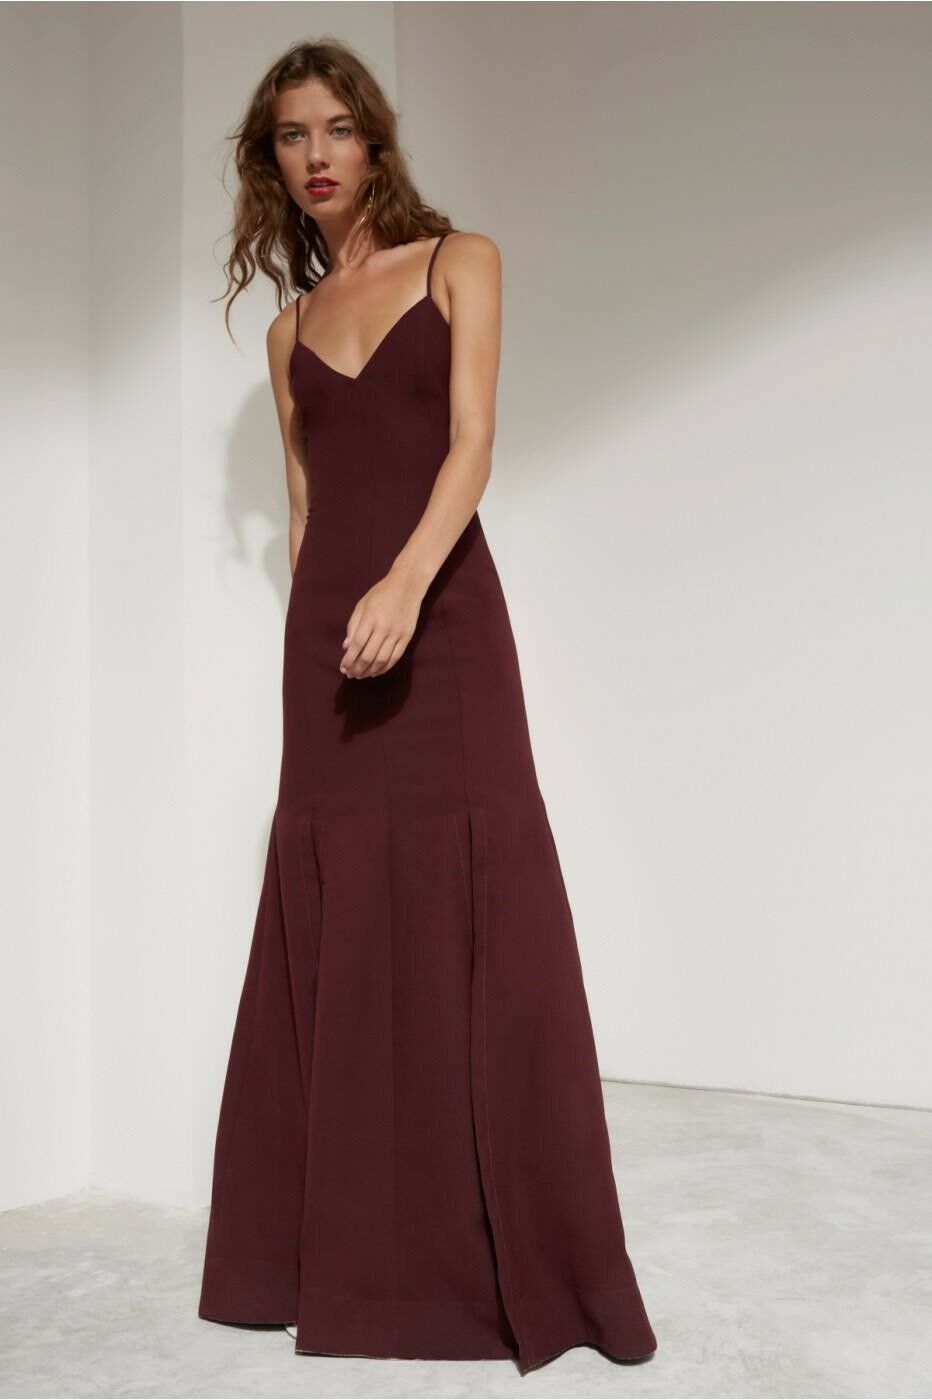 C MEO MEO MEO COLLECTIVE Red Maxi Dress Oblivion Full Length Burgundy Gown formal XS 8c7306